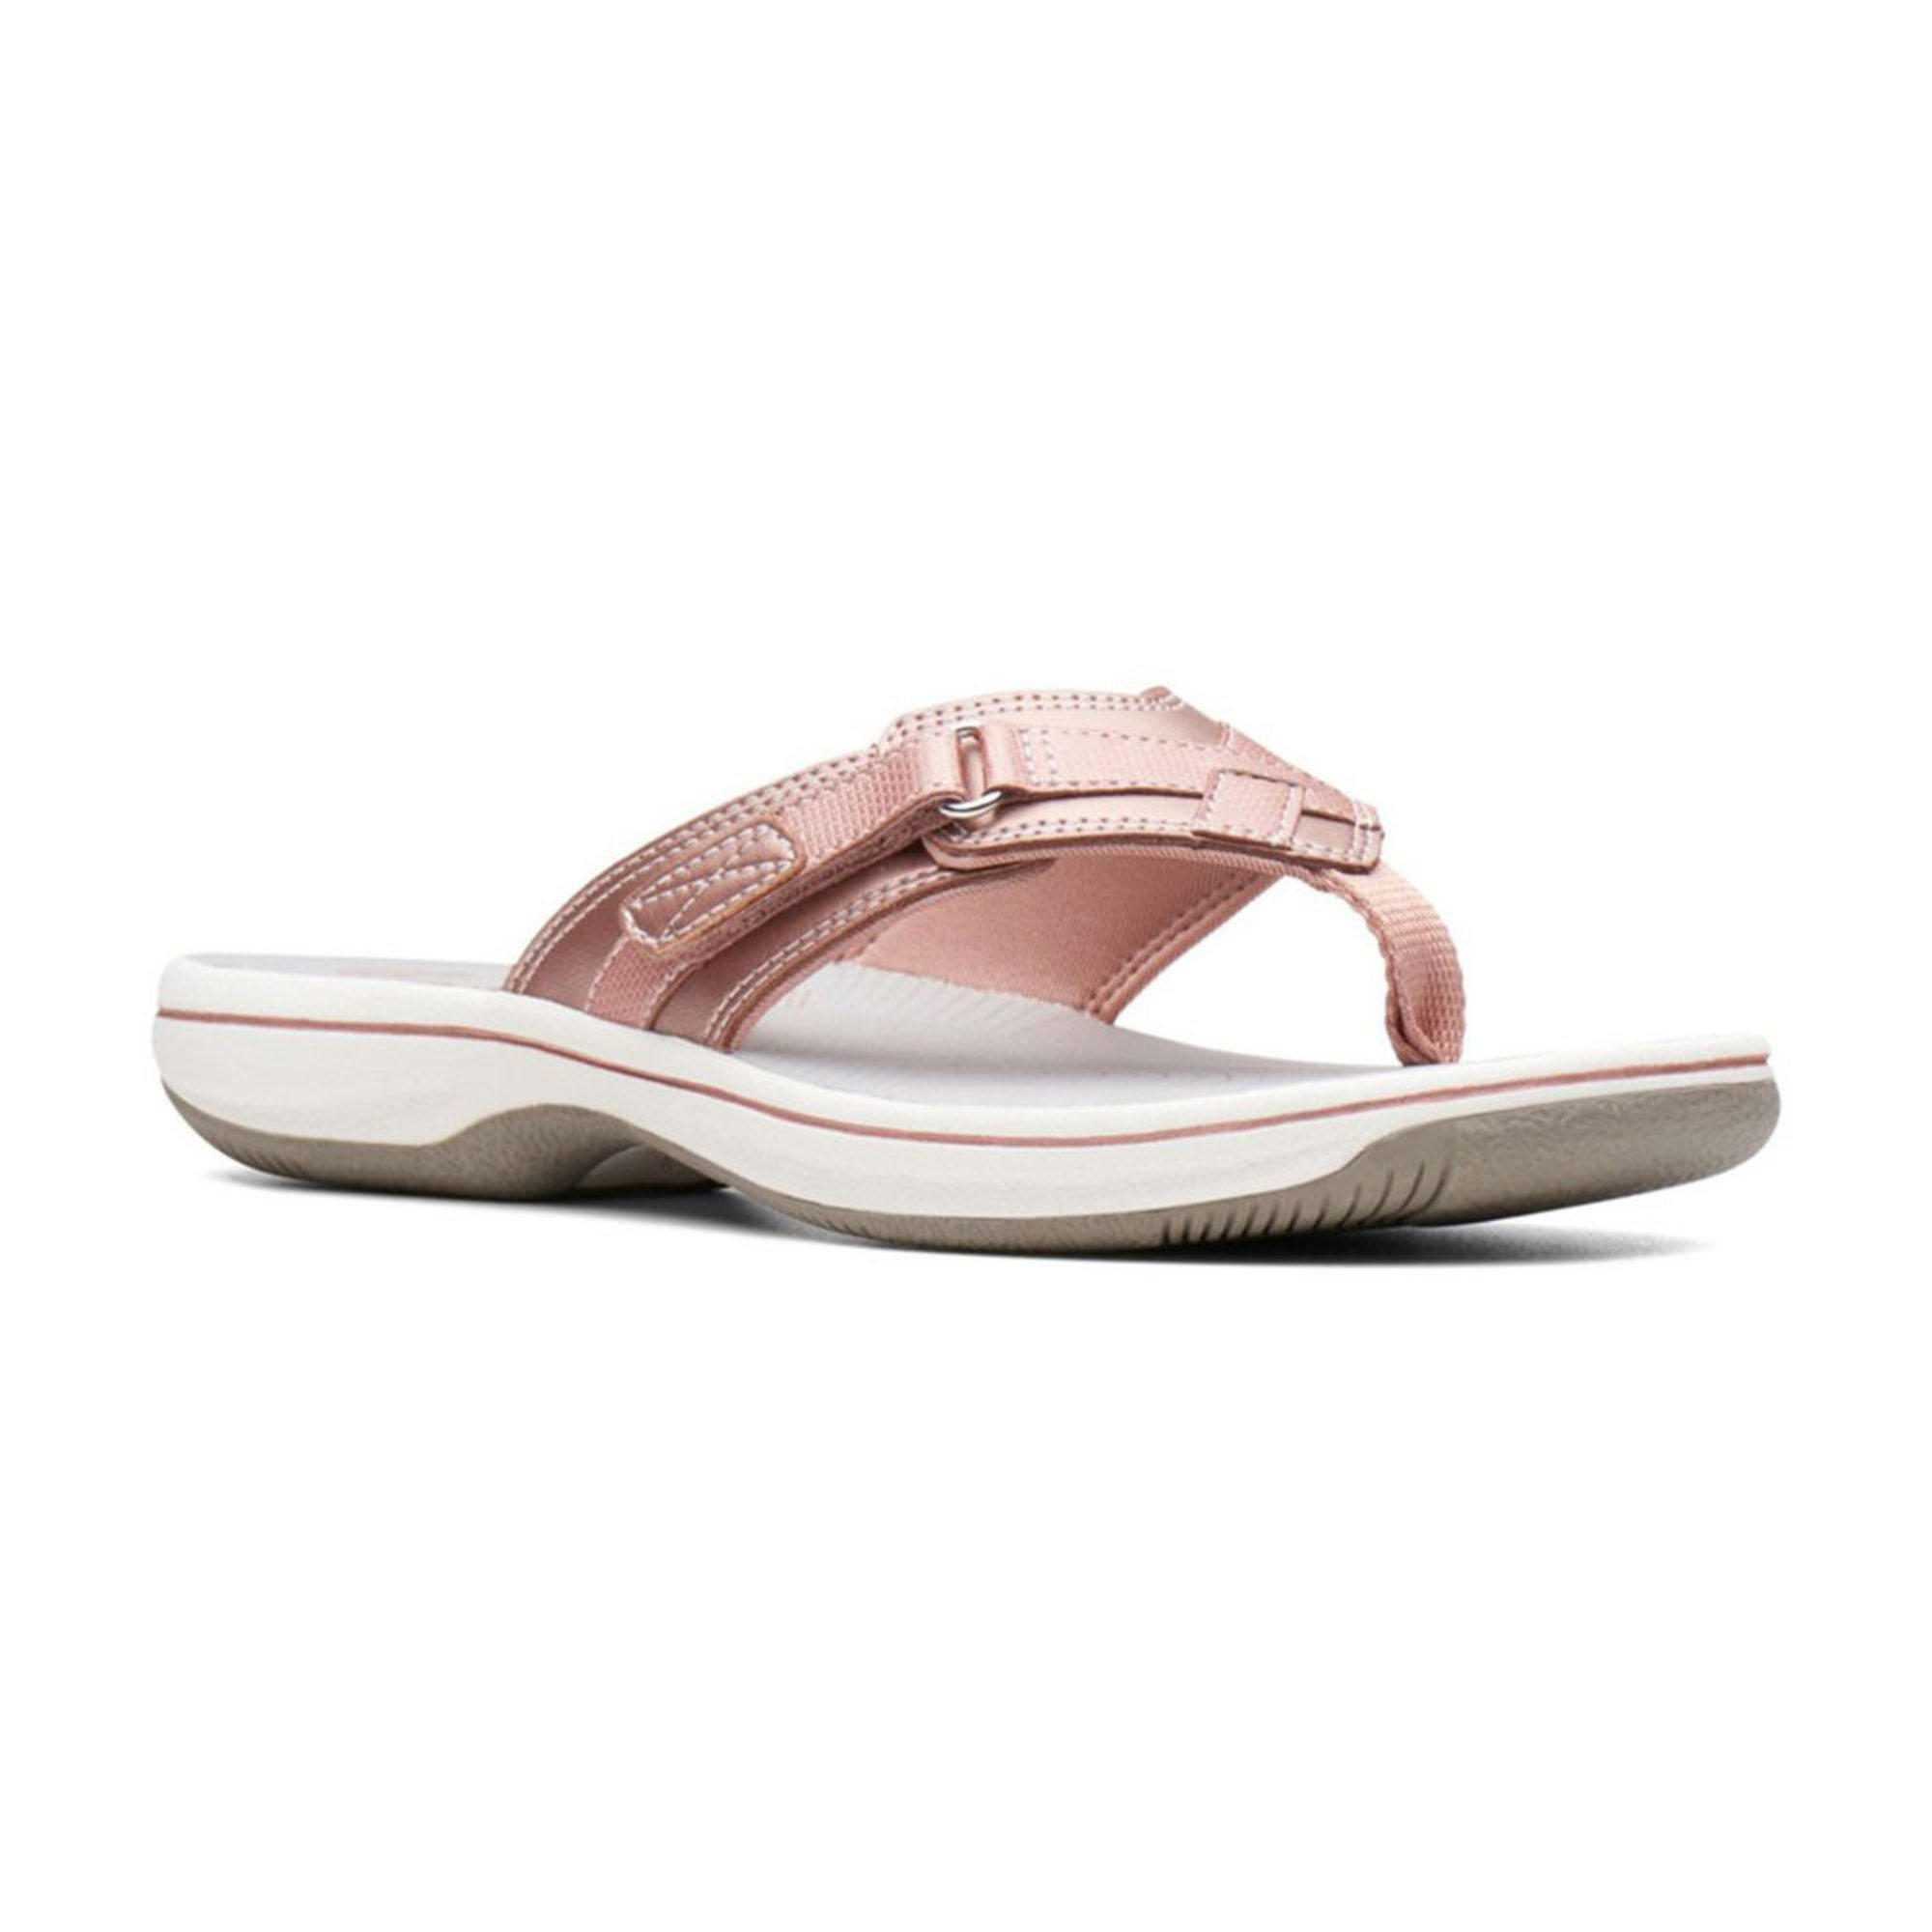 e6f903f01 Clarks Women's Breeze Sea Sandal | Women's Sandals | Shoes - Shop ...